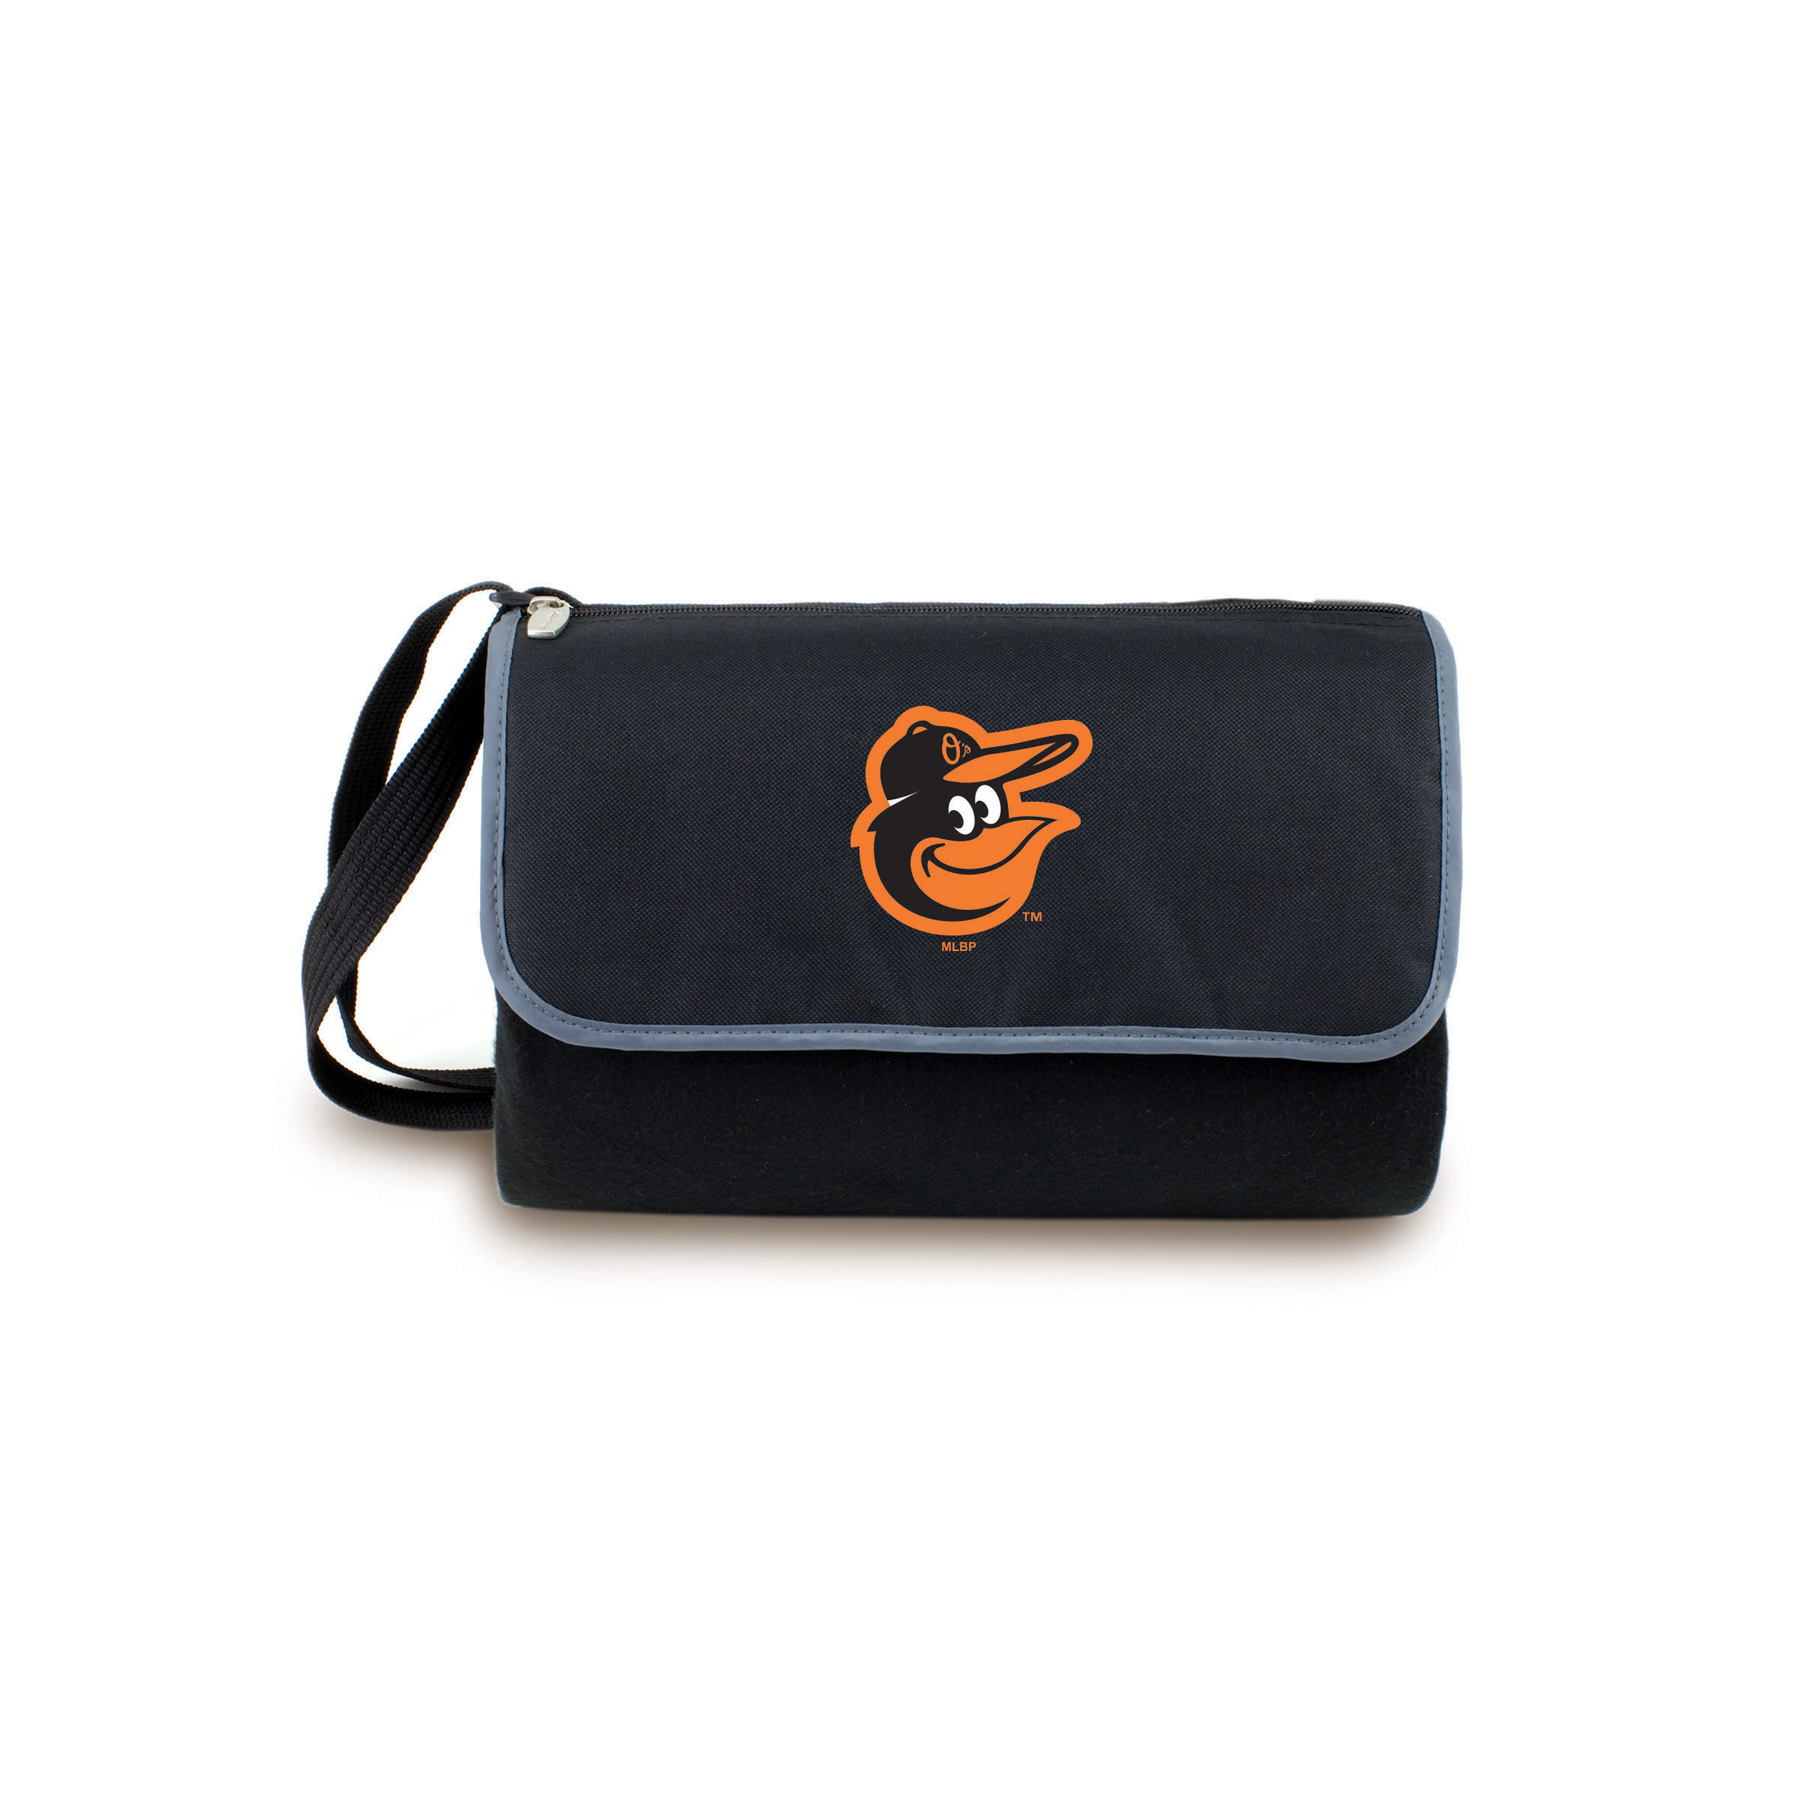 Image of Picnic Time Baltimore Orioles Blanket Tote Outdoor Picnic Blanket, storm